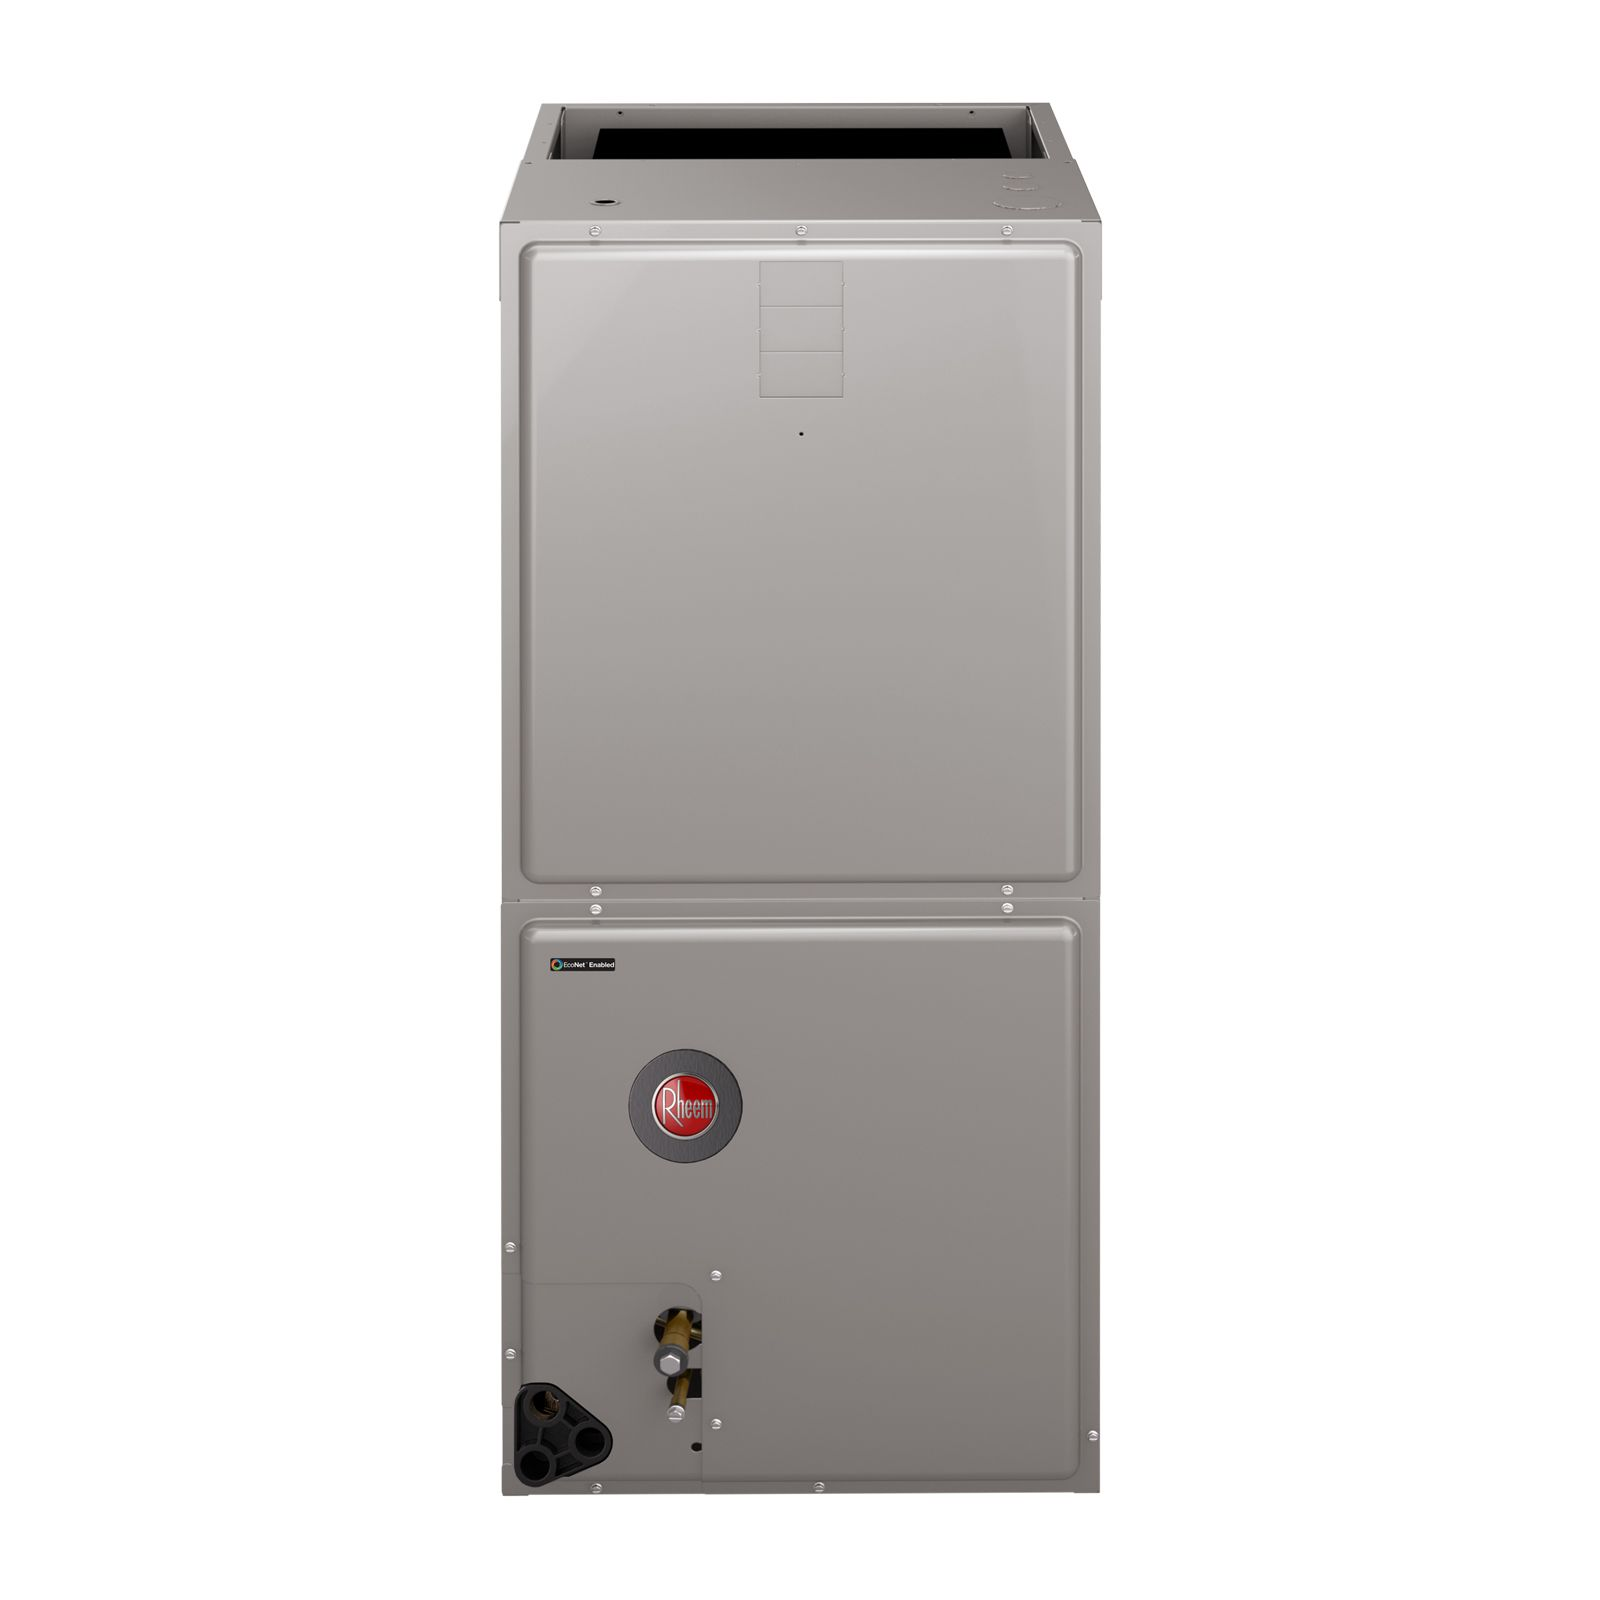 "Rheem RHMV6021SEACJA - 5 Ton, Modulating, EcoNet Enabled, Air Handler, ECM Motor, EEV Valve, 21"" Wide, 208/240V, 1Ph, 60Hz"